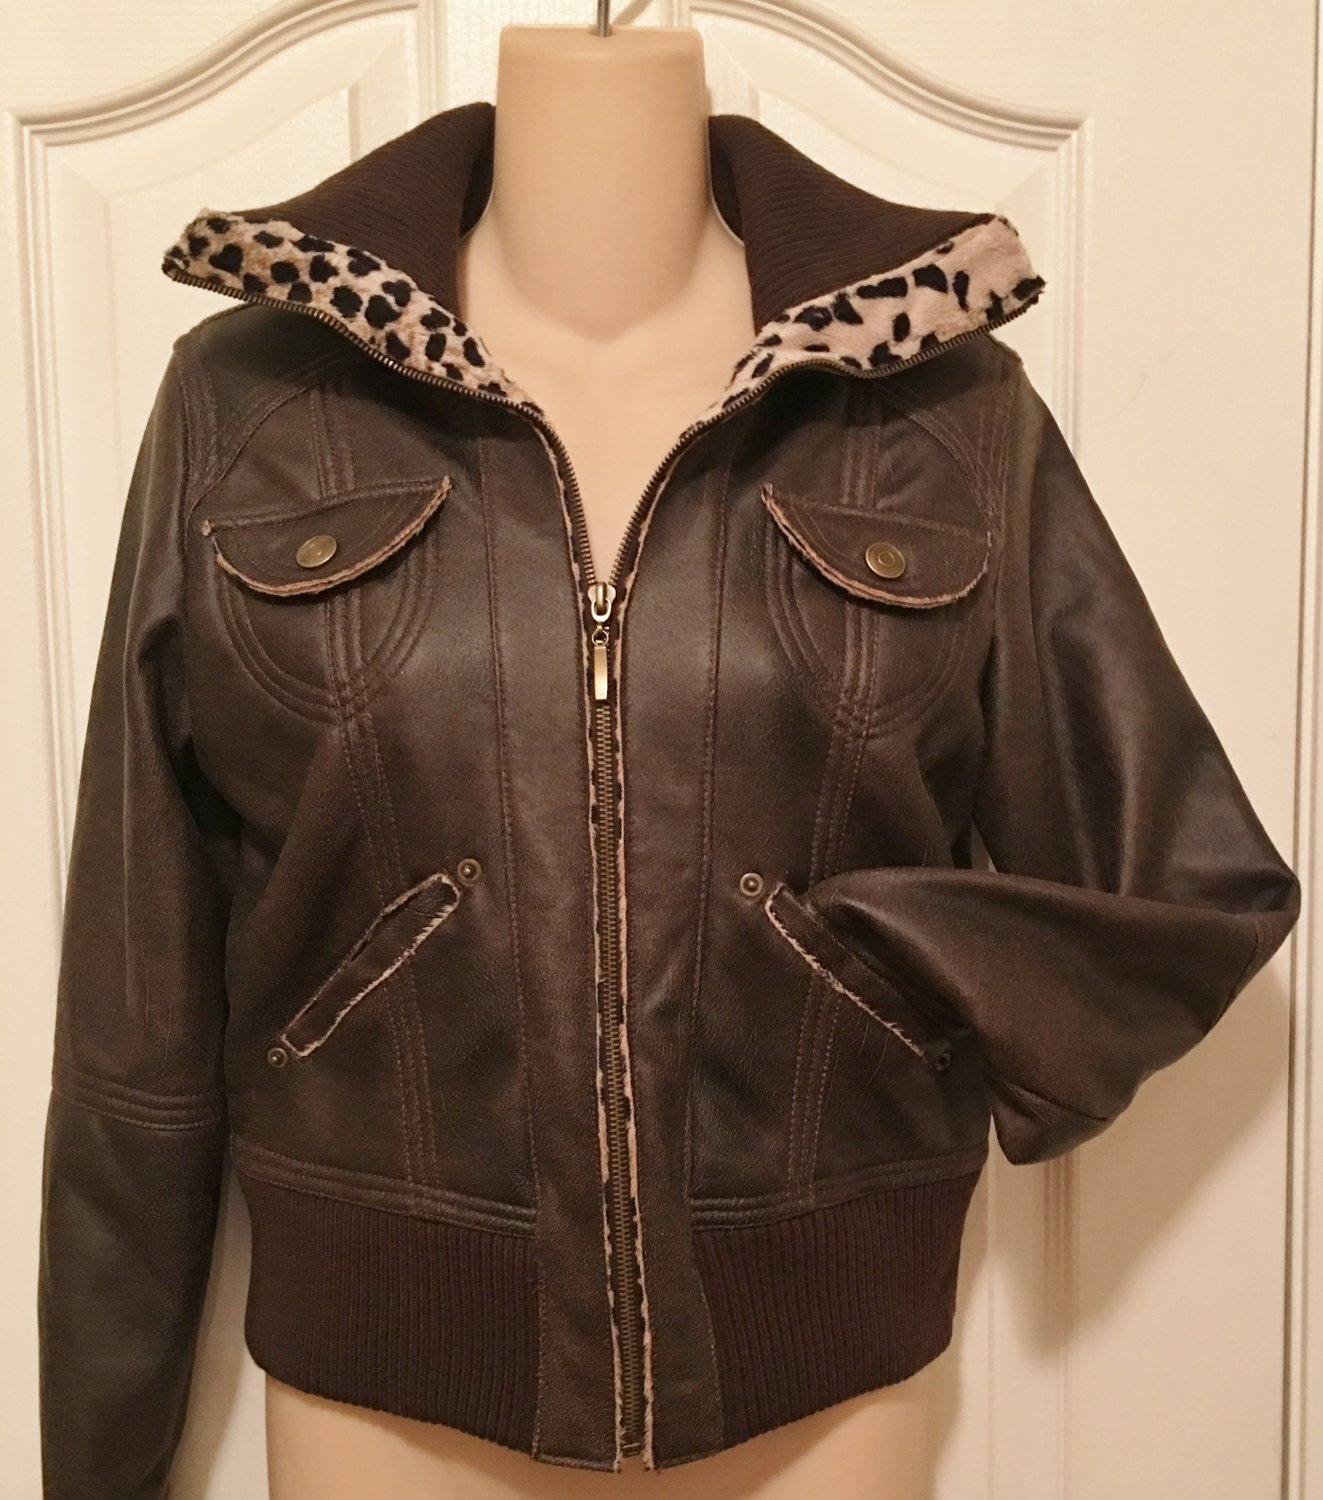 NWT LEATHER BOMBER JACKET Marcelle Renee Faux Fur Lined Coat SMALL BROWN